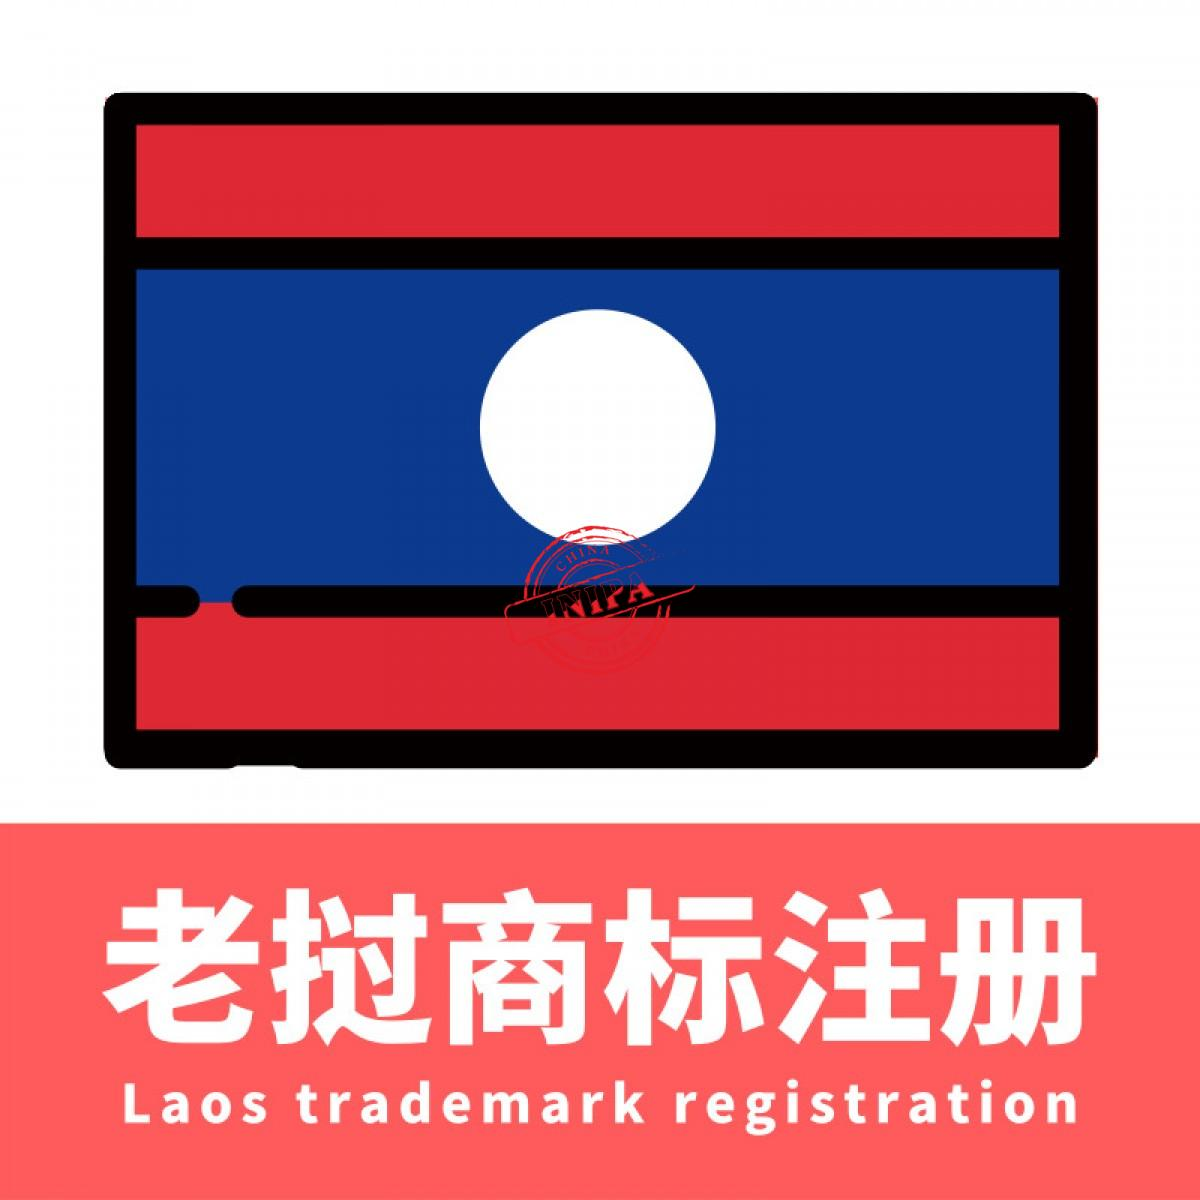 老挝商标注册/Laos trademark registration